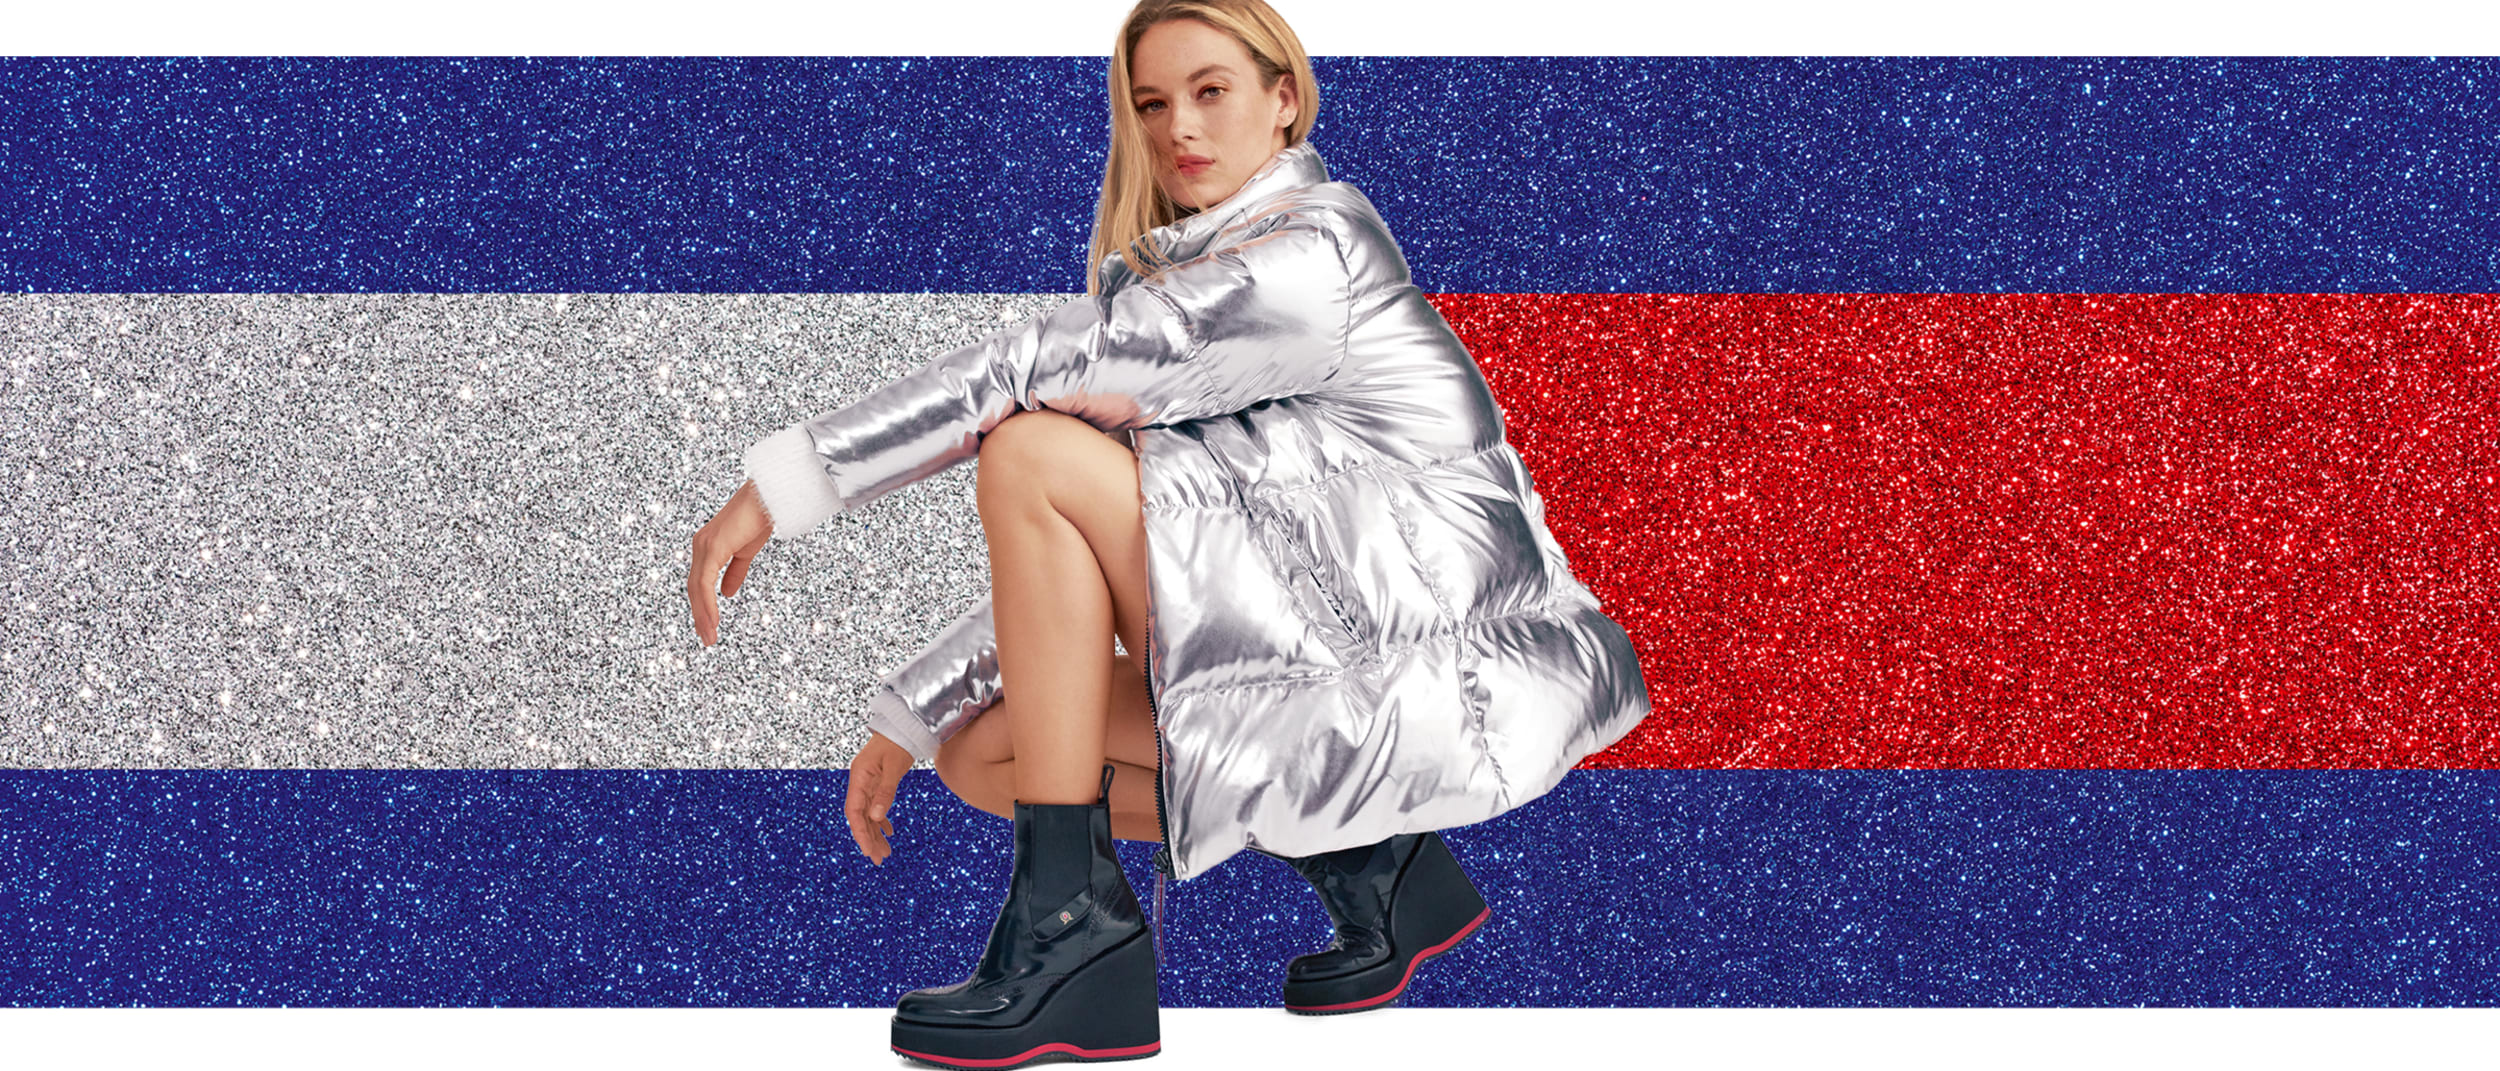 Tommy Hilfiger: complimentary embroidery